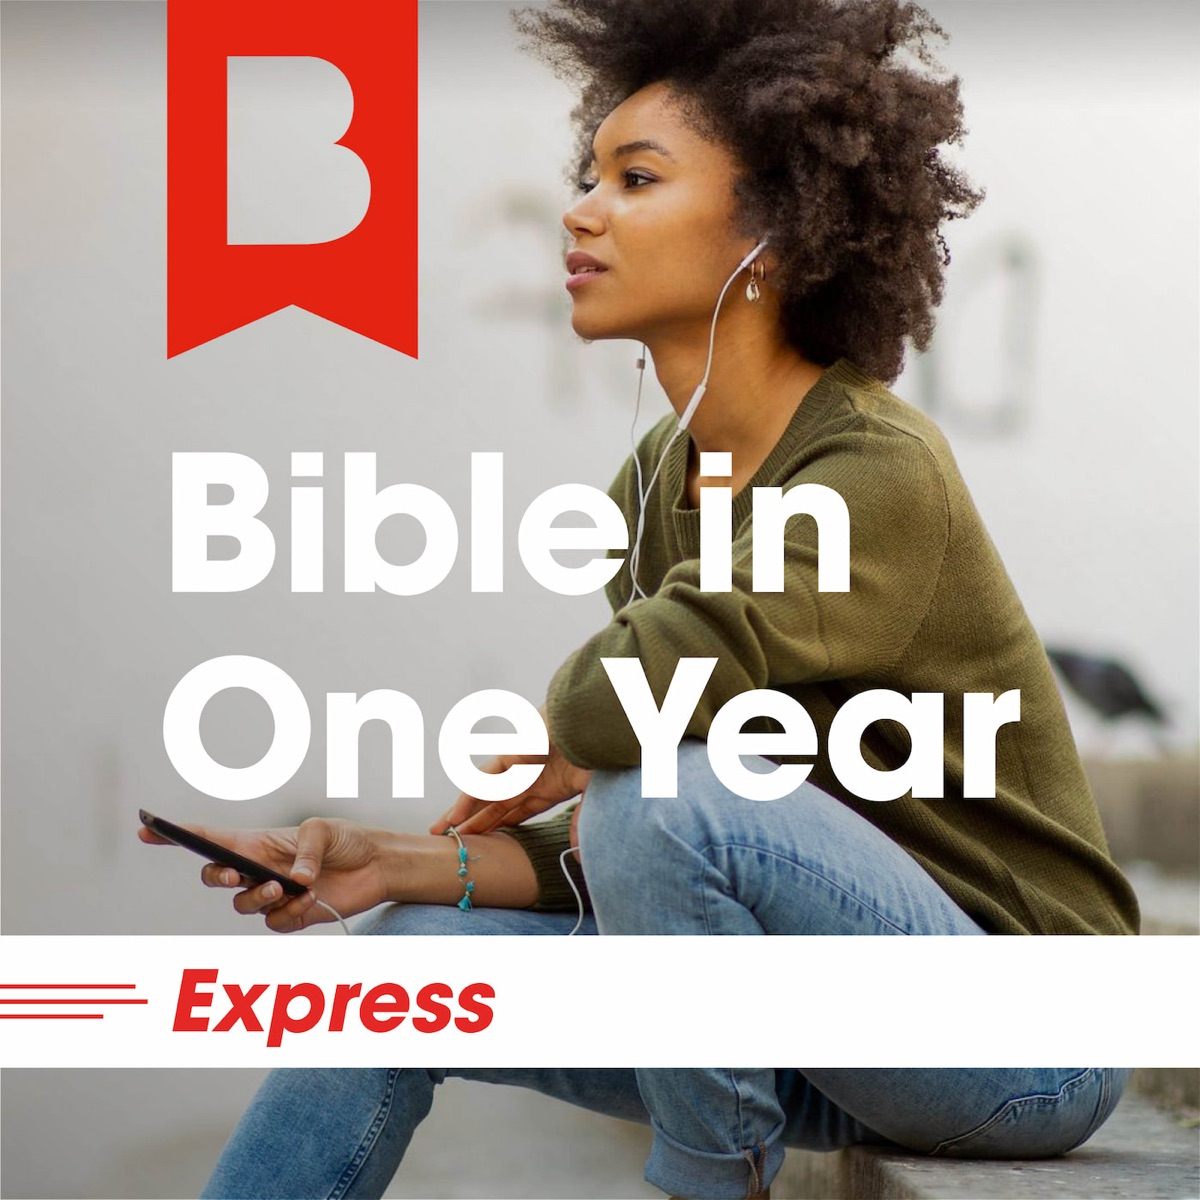 Bible in One Year Express